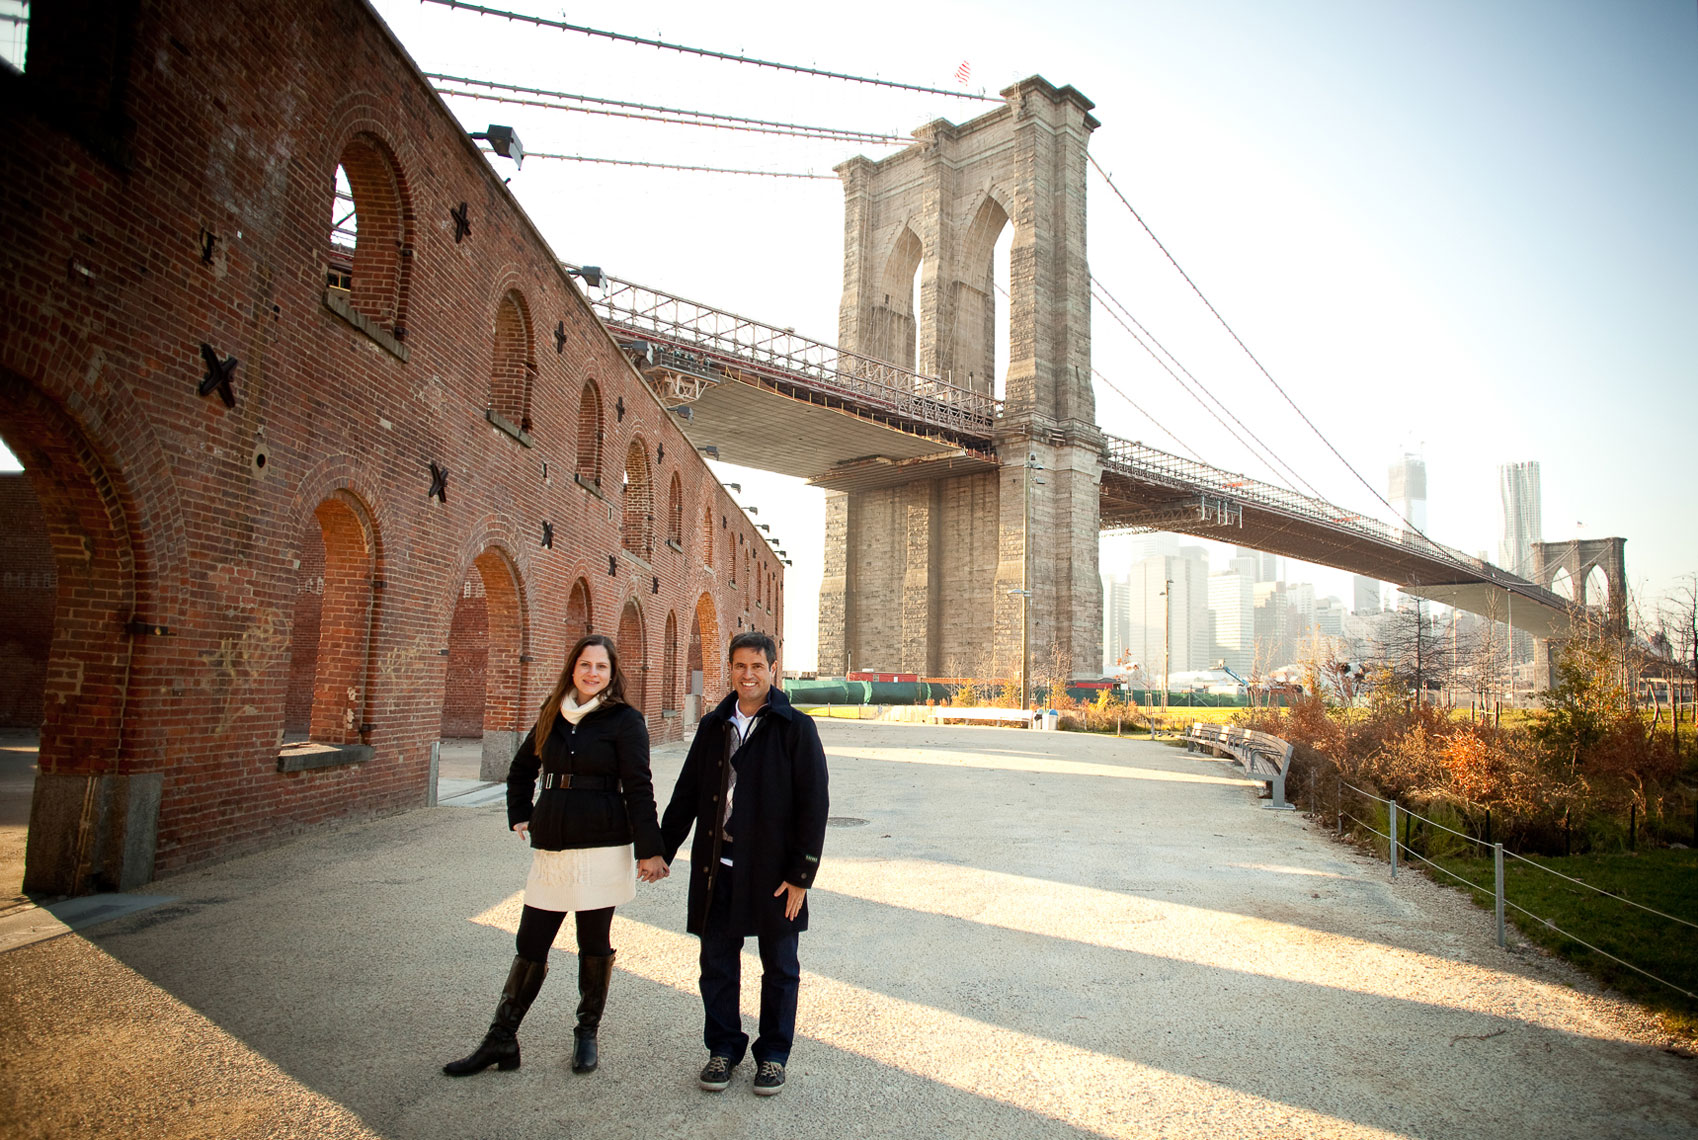 Kathi_Littwin_Photography_NYC_Portraits_2146